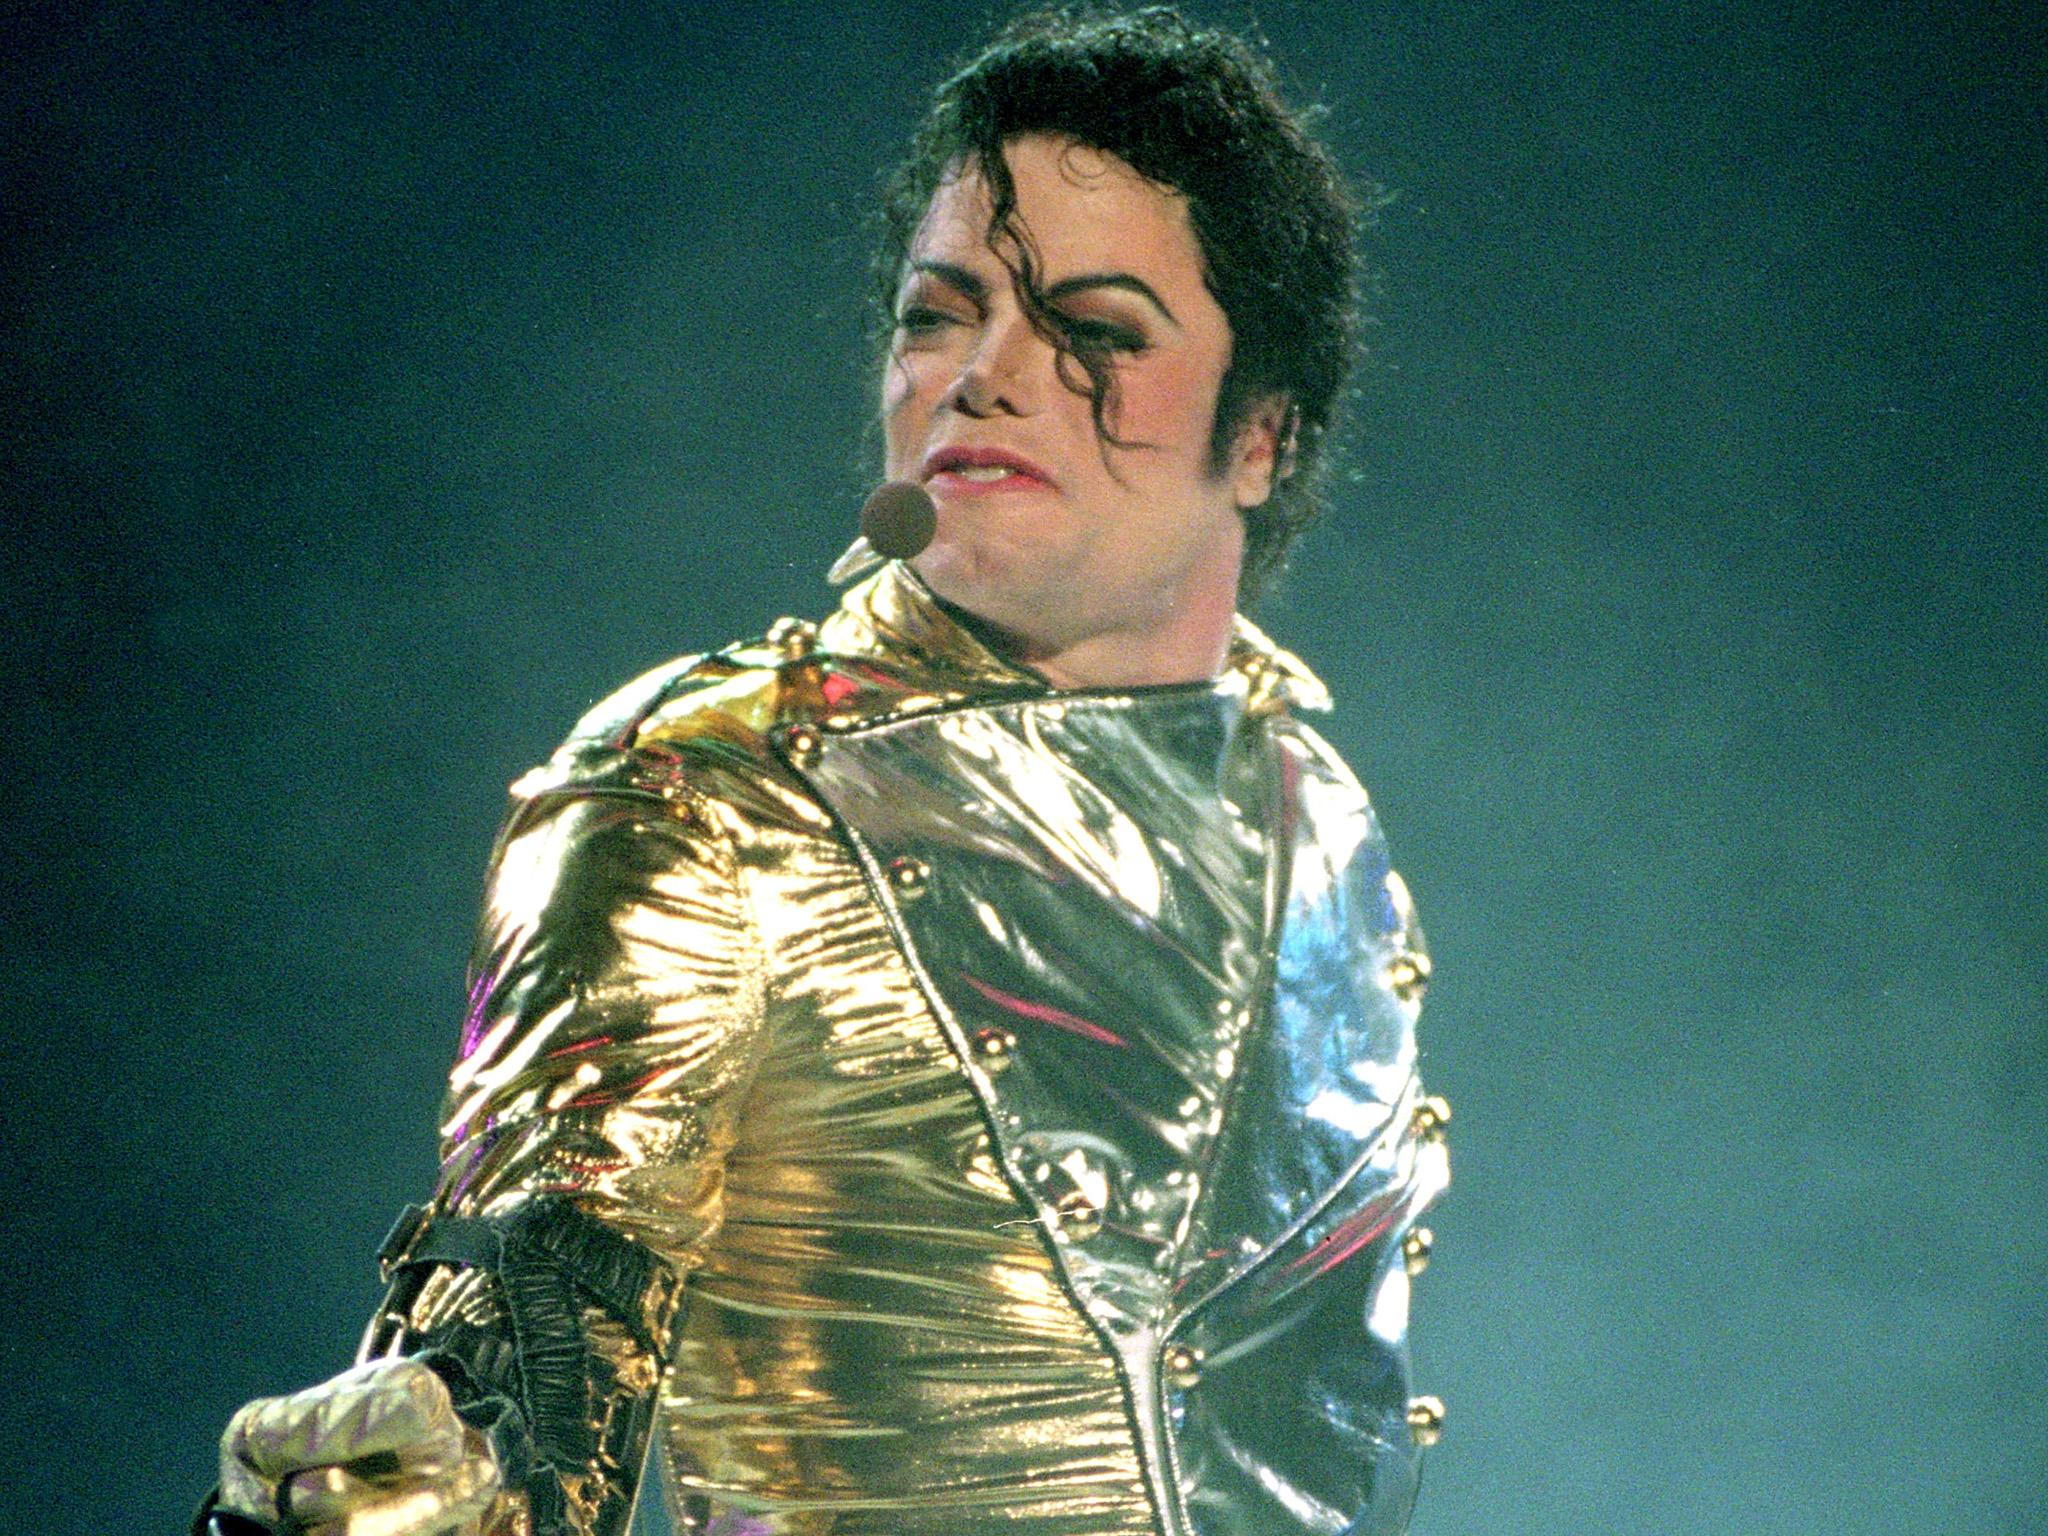 Michael Jackson was chemically castrated by late father Joe